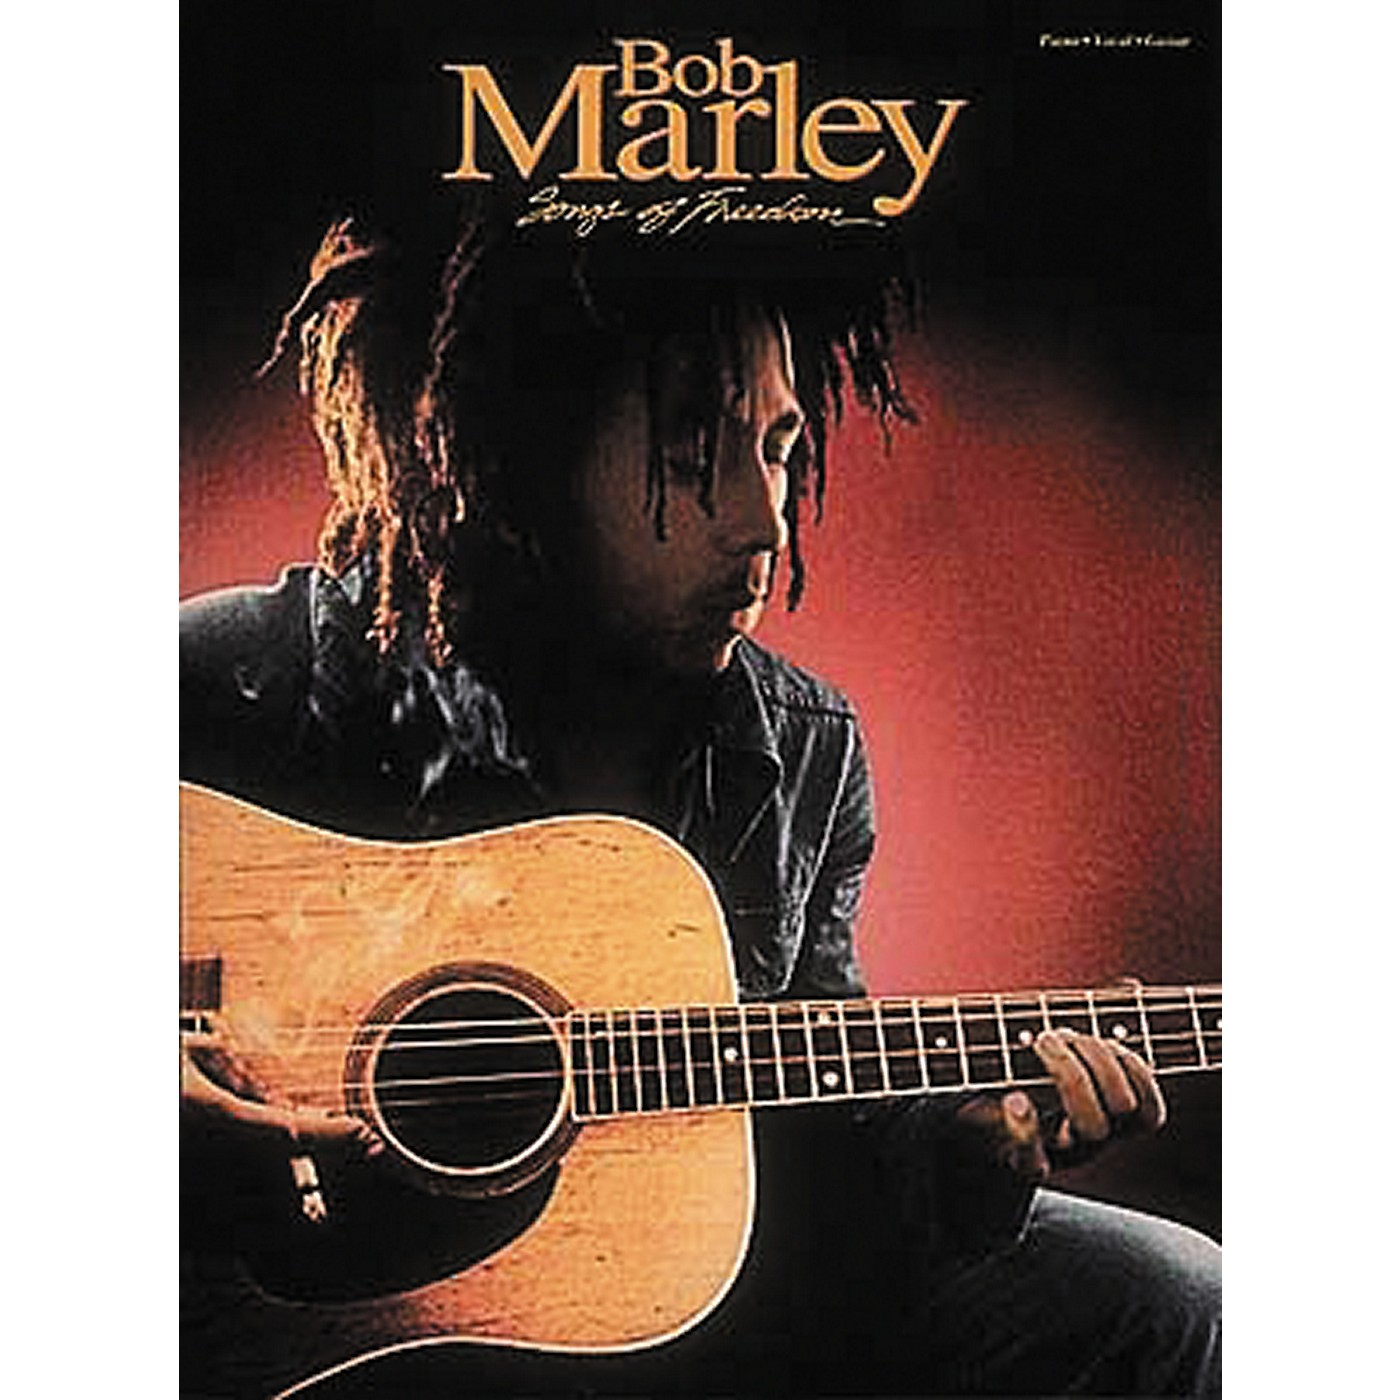 Hal Leonard Bob Marley - Songs of Freedom Piano, Vocal, Guitar Songbook thumbnail